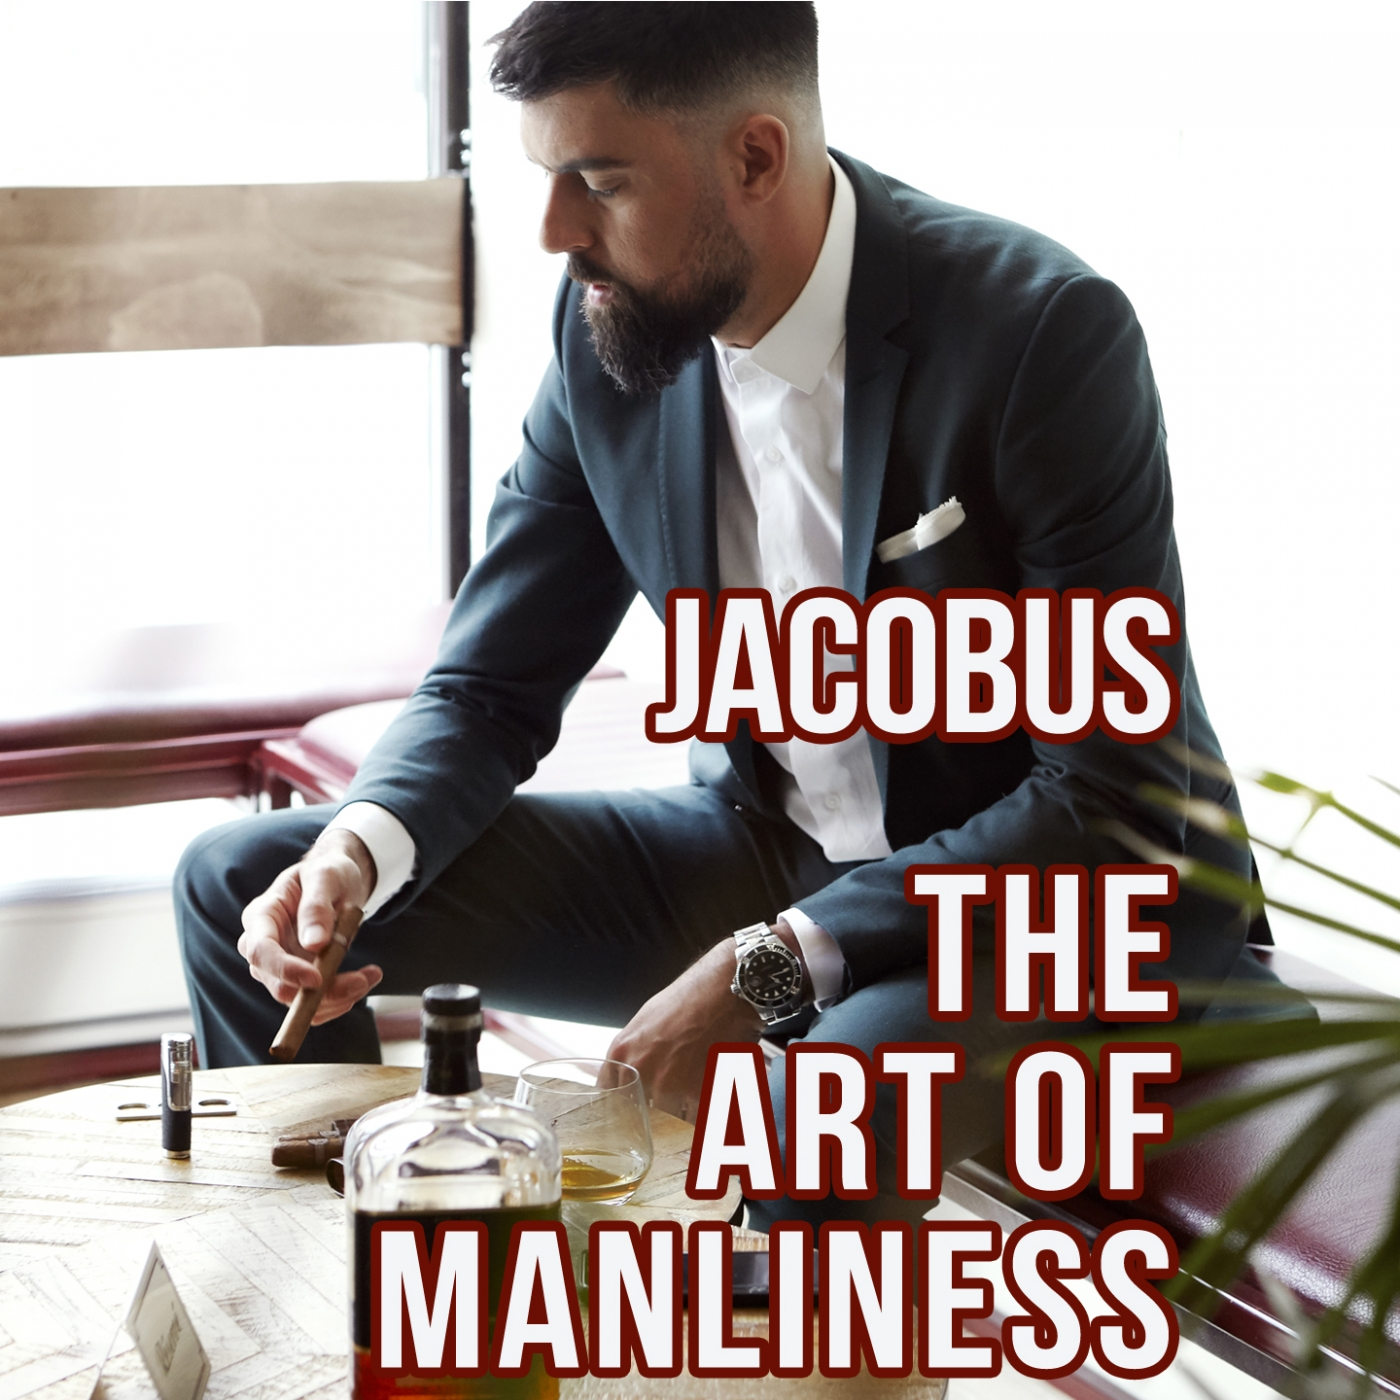 Jacobus - The Art of Manliness